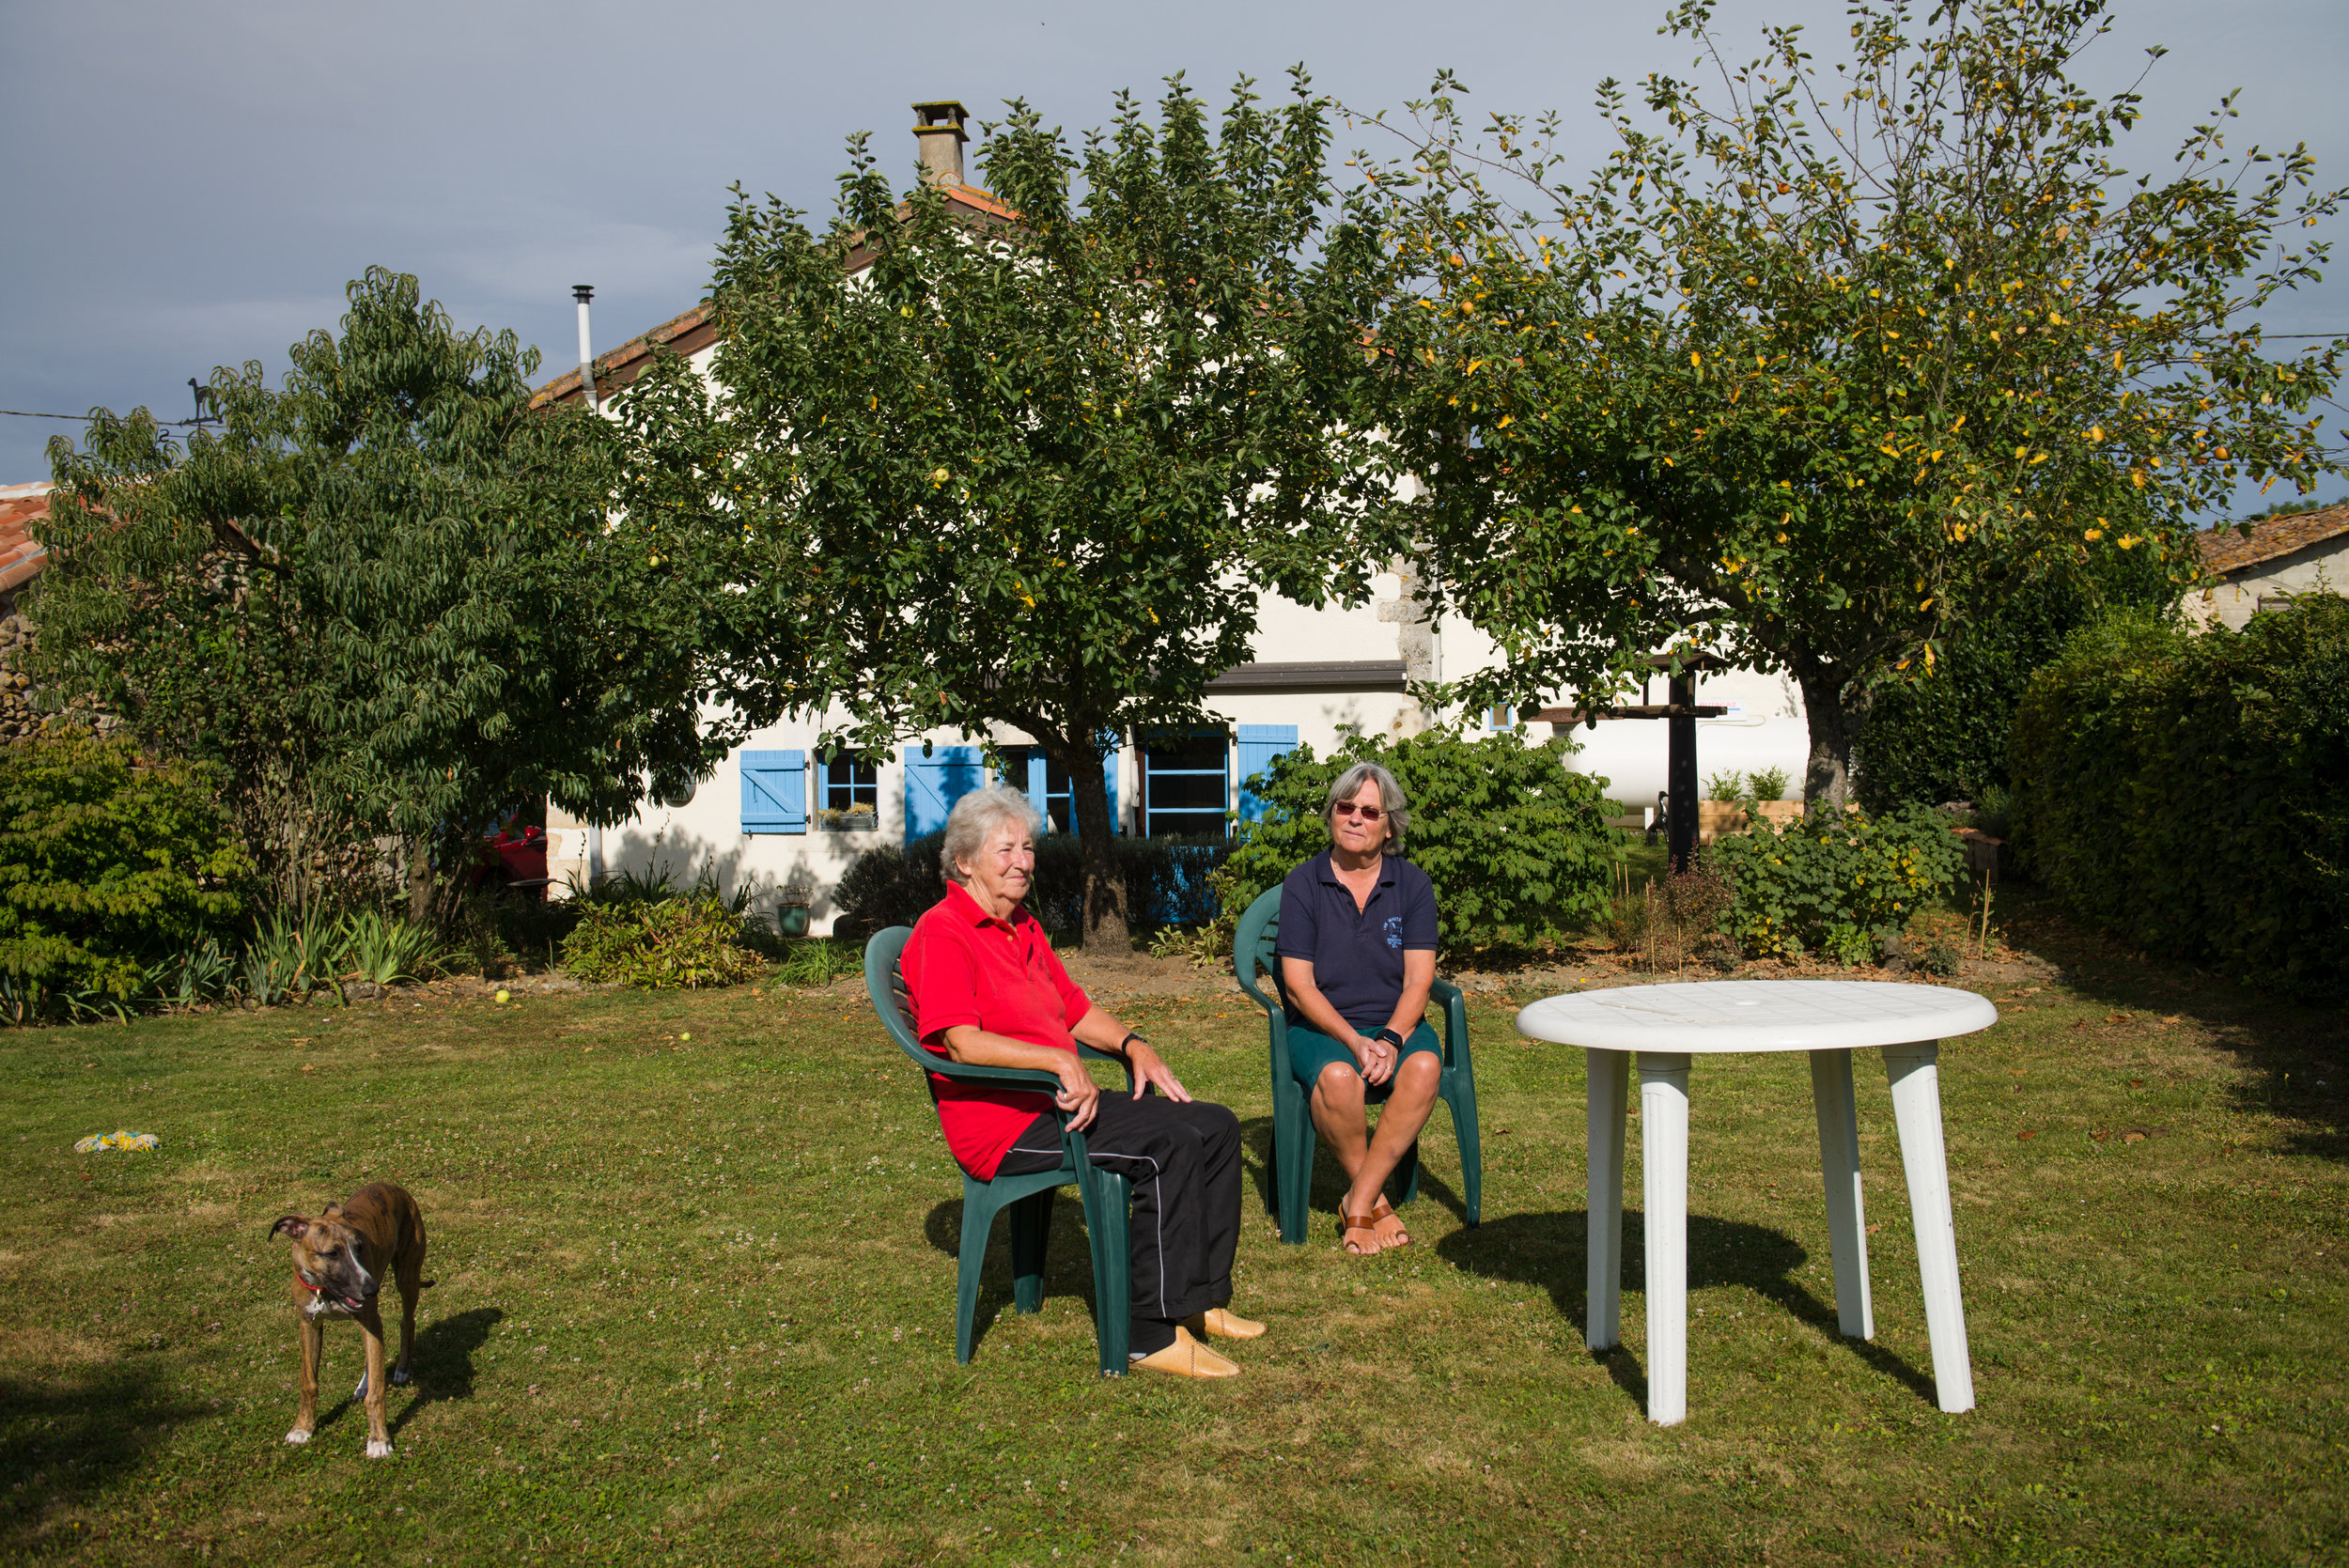 """Dorothea Farquhar (right) and her partner Wendy Wray (left) in the backyard of their home in La Chapelle-Bâton, France. Dorothea and Wendy retired to France in 2015, however only Wendy is of pension age so they both live off that one income (with the exception of some small savings). """"I can not for see of any situation where I would return to the United Kingdom, unless they forcibly eject me,"""" Dorothea said. """"I have no wishes to go back, I have very little family there, I have no ties. We sold our house, we sold our cars. We actually came over in a taxi. We are quite famous as the 2 women who arrived in France, in a taxi, with 3 dogs."""""""